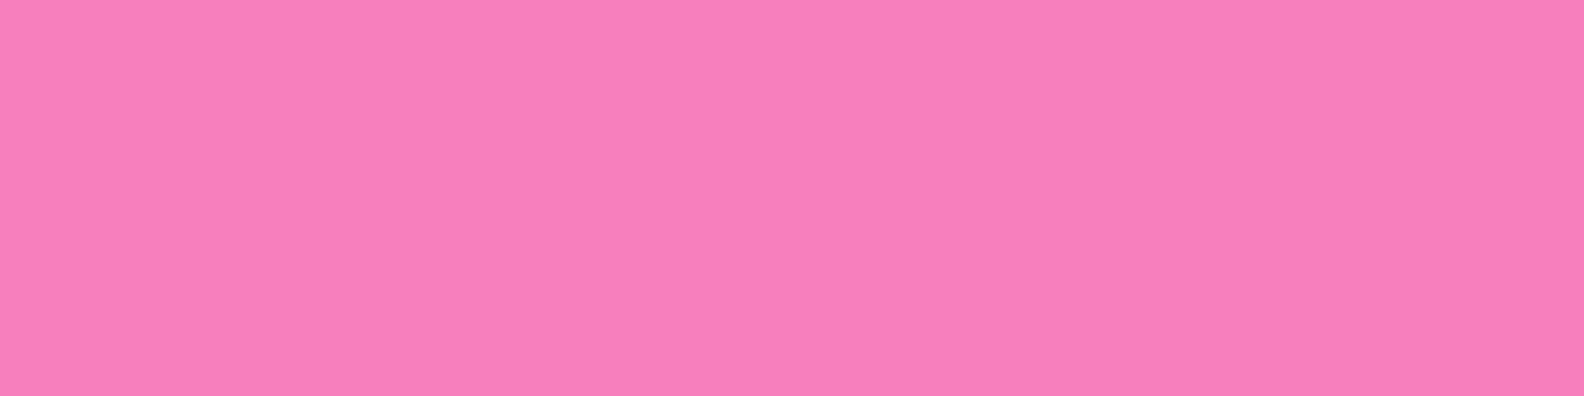 1584x396 Persian Pink Solid Color Background